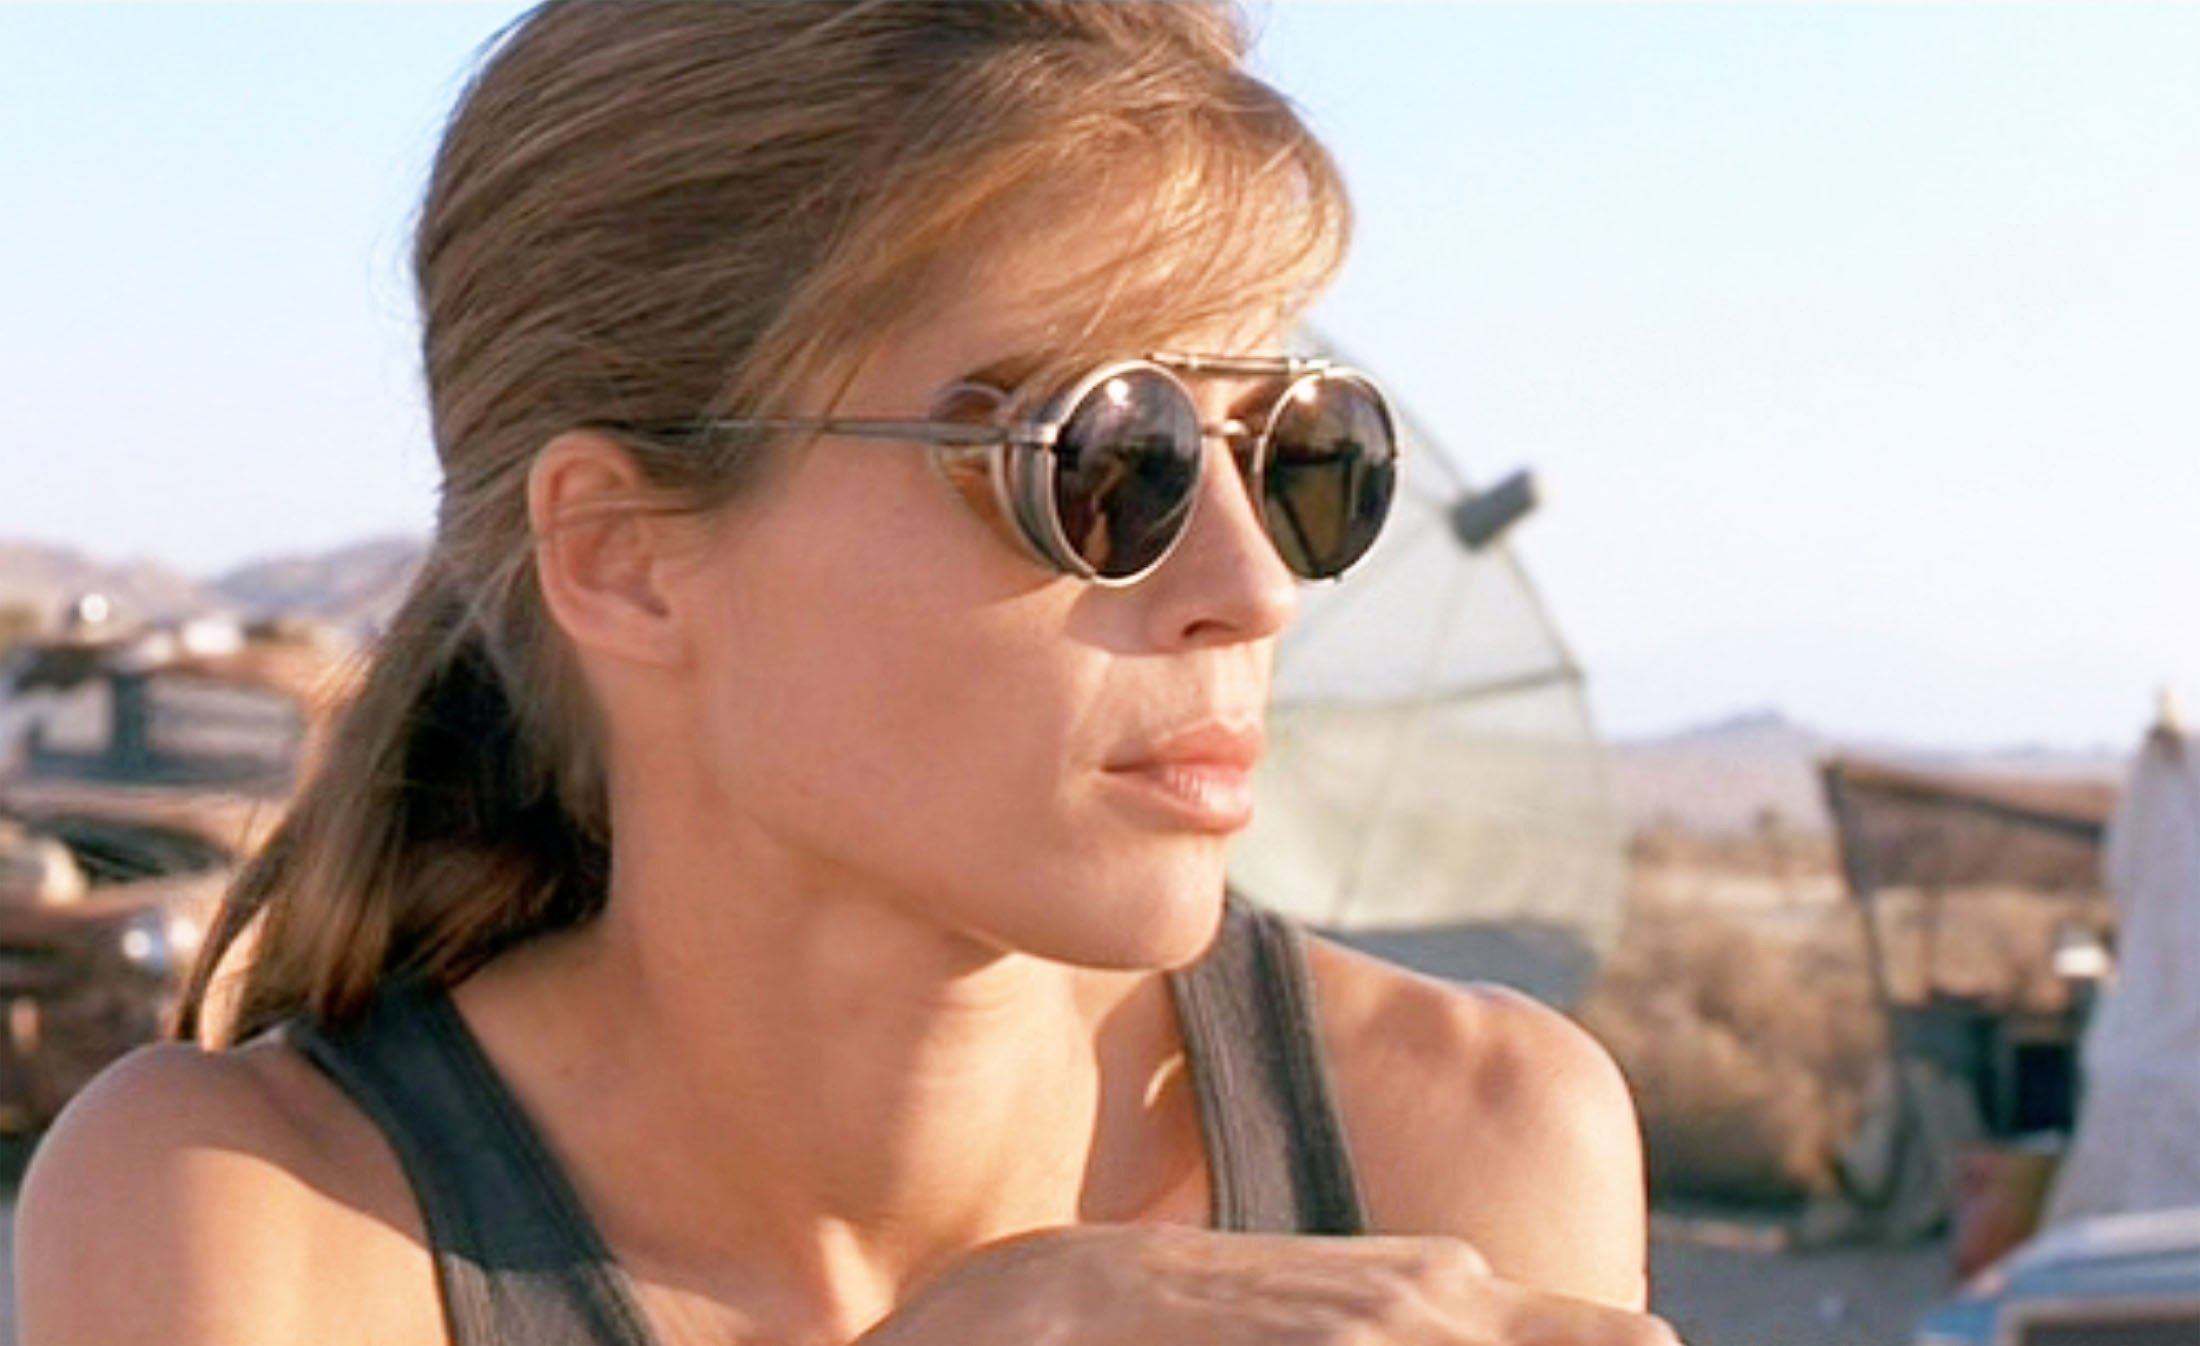 Linda Hamilton, playing Sarah Connor, wears black, round sunglasses in a scene from the movie 'Terminator 2: Judgement Day', released in 1991. (Getty Images)